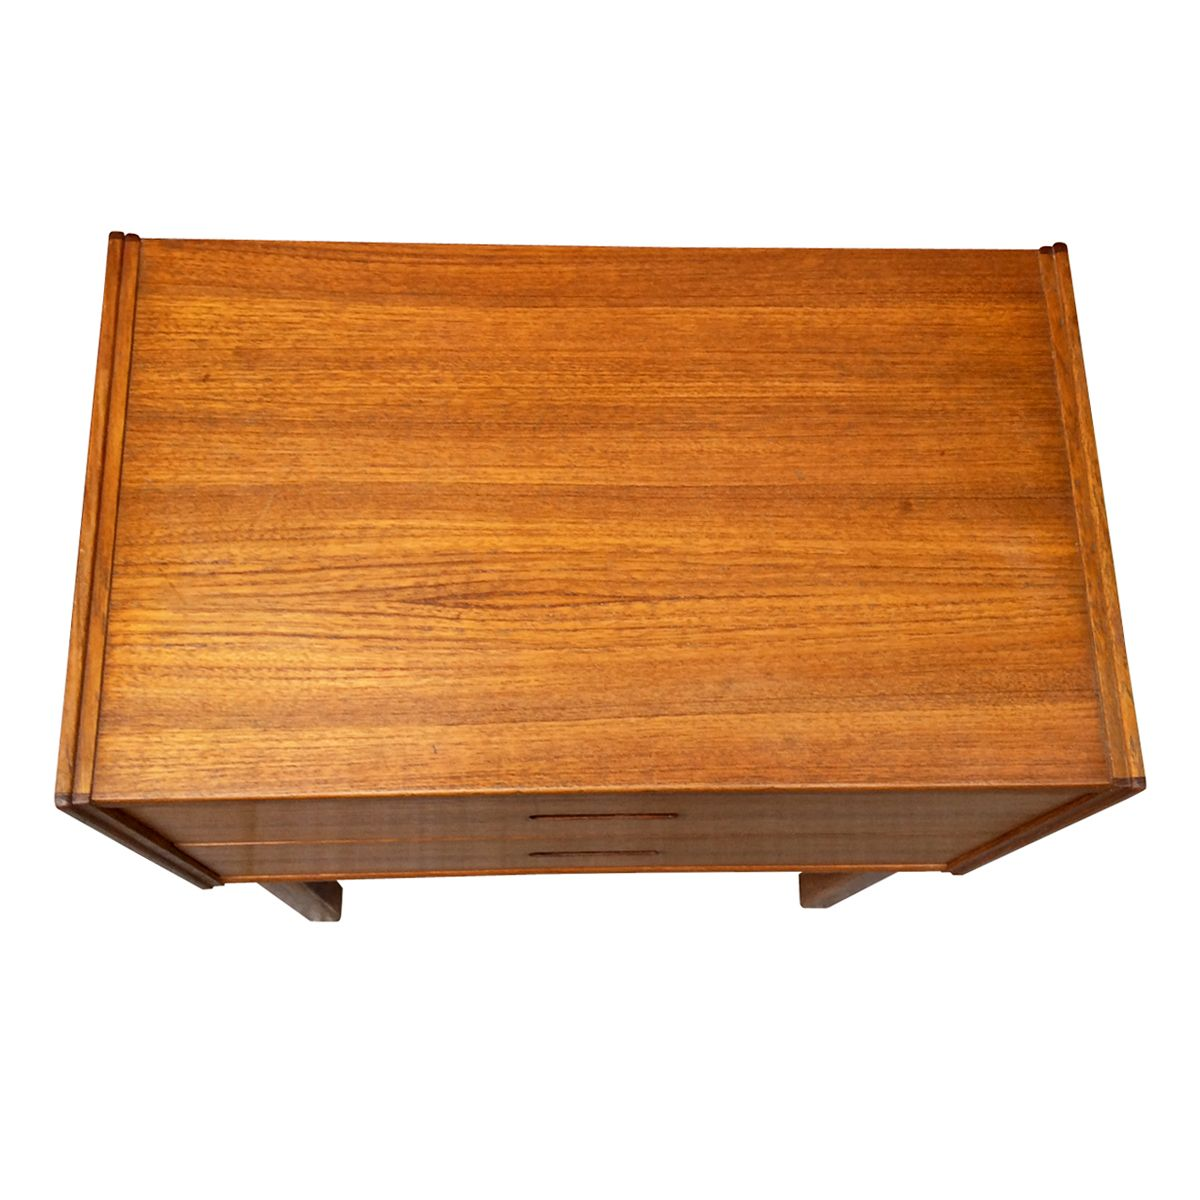 Side table with drawer and shelf - Price Per Piece